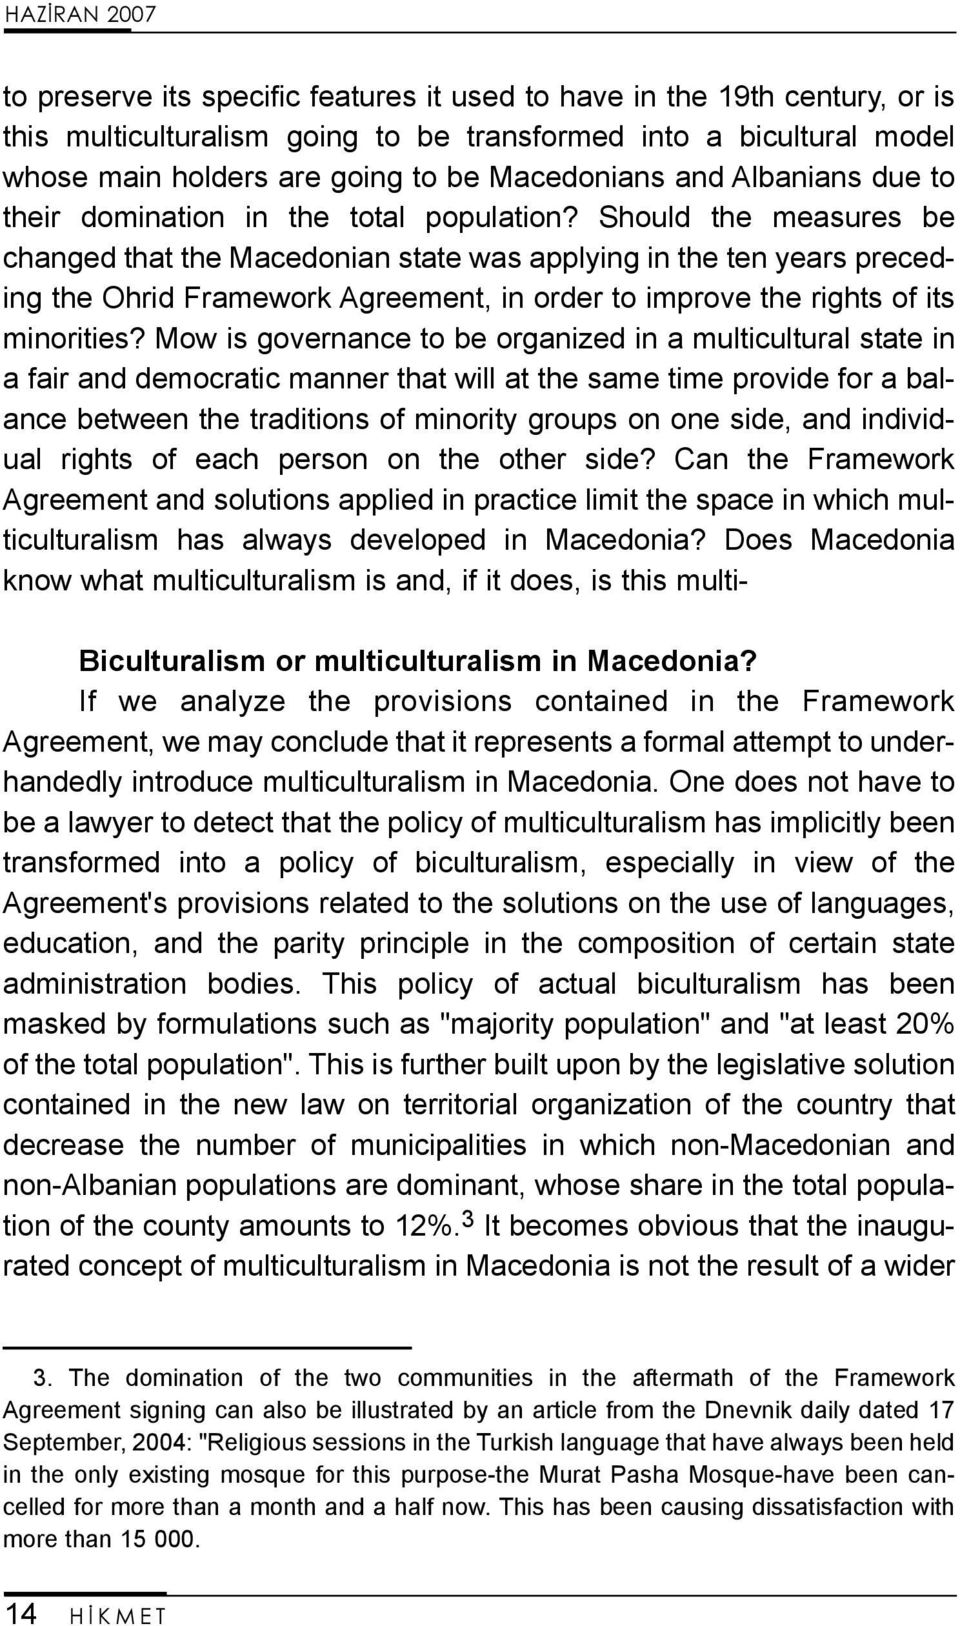 Should the measures be changed that the Macedonian state was applying in the ten years preceding the Ohrid Framework Agreement, in order to improve the rights of its minorities?